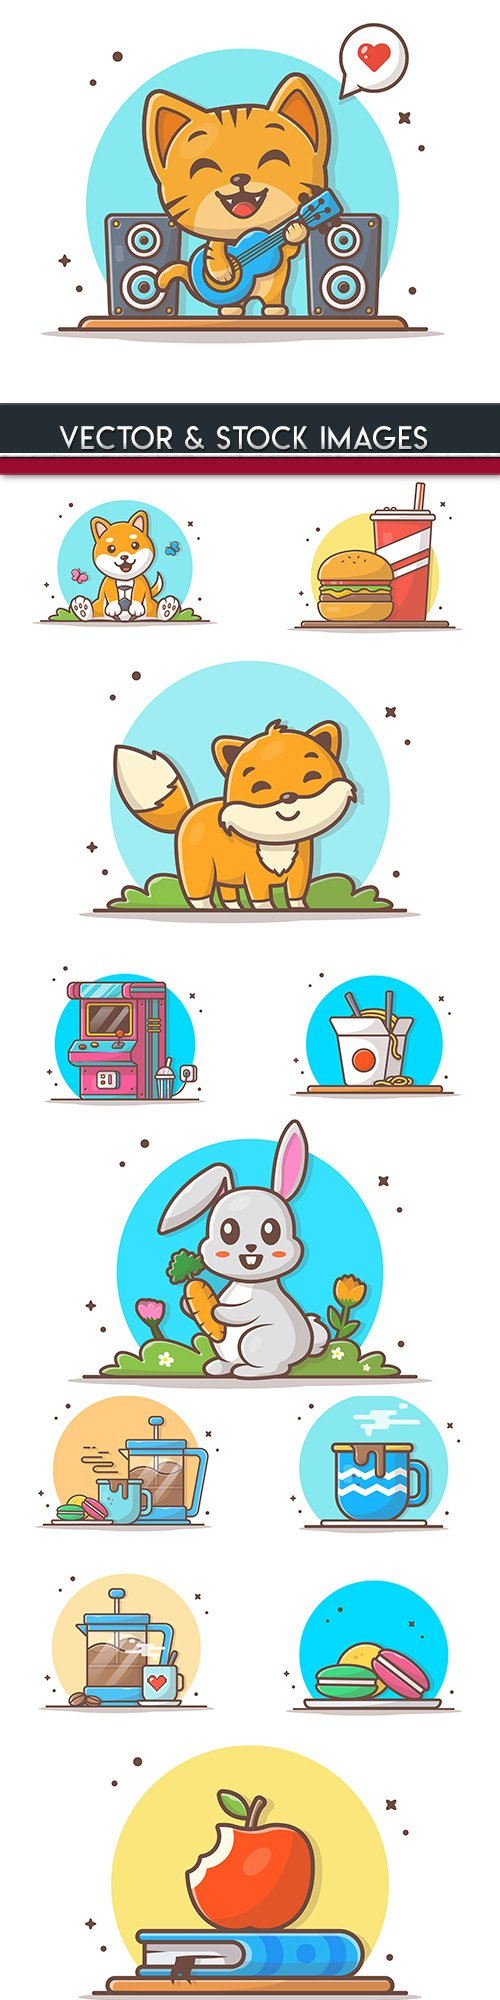 Funny animals icon illustration and badges